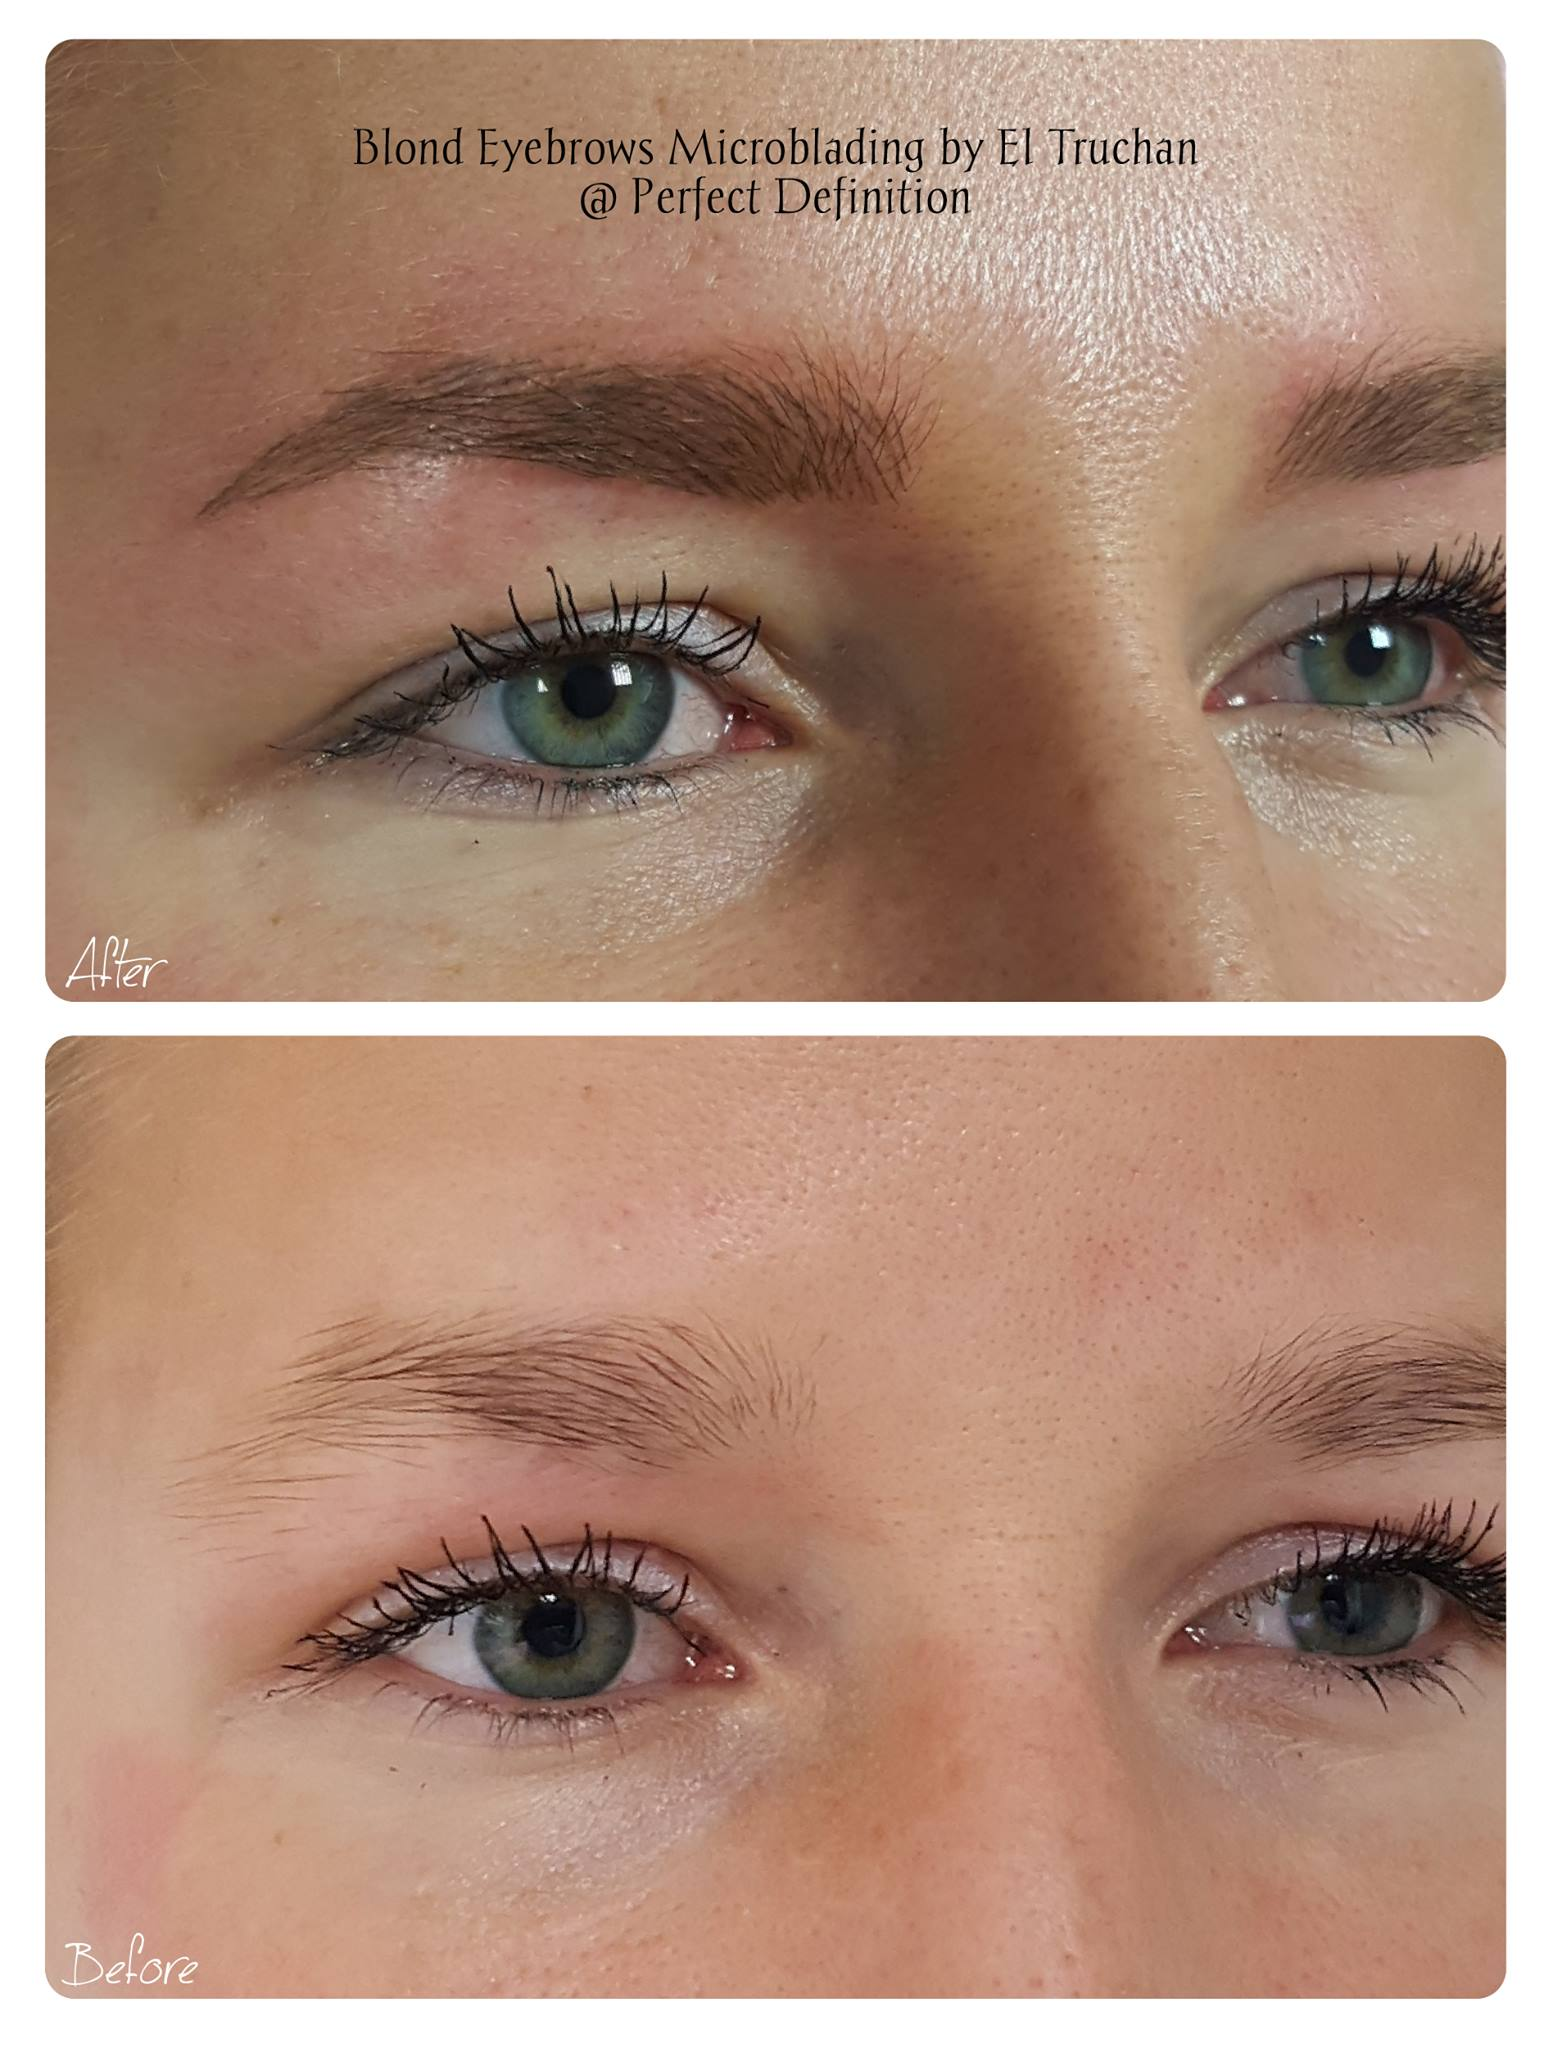 Blonde Eyebrows Microblading by El Truchanjpg